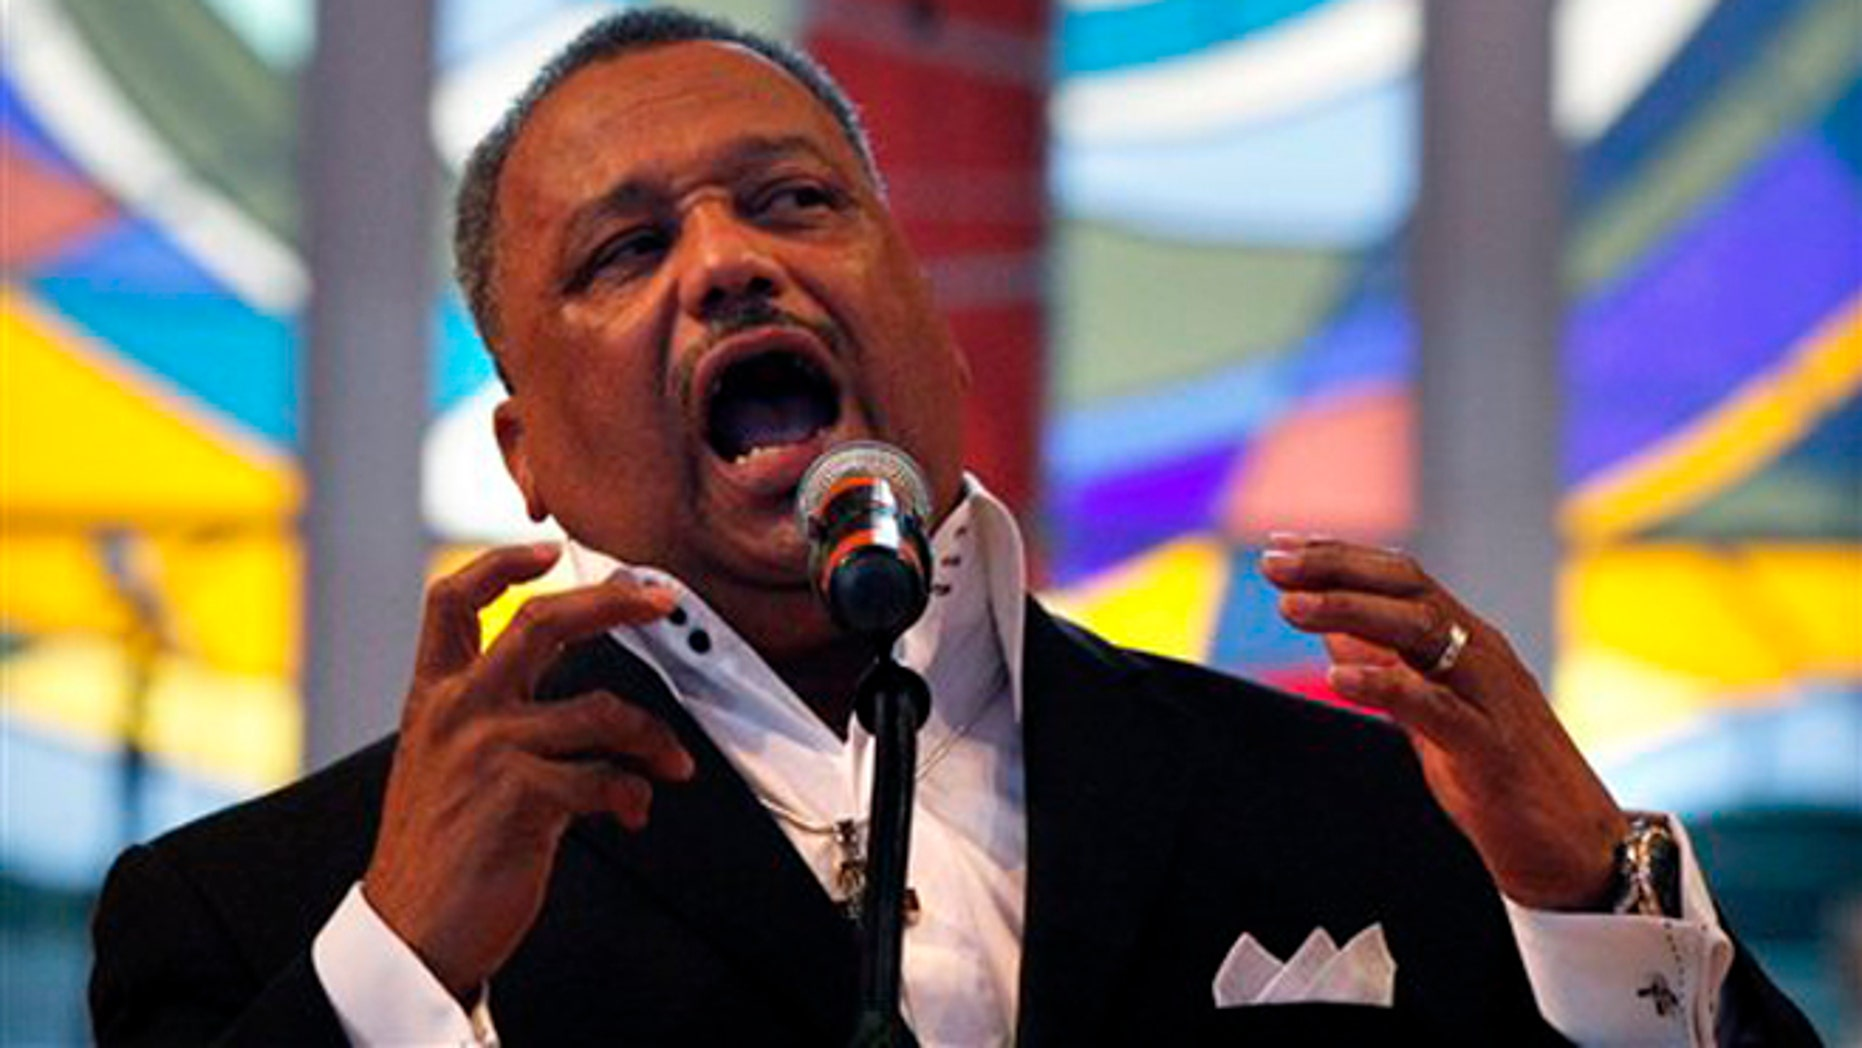 June 3, 2012: Rev. Fred Luter, pastor of the Franklin Ave. Baptist Church, delivers a sermon during Sunday Services at the Church in New Orleans.